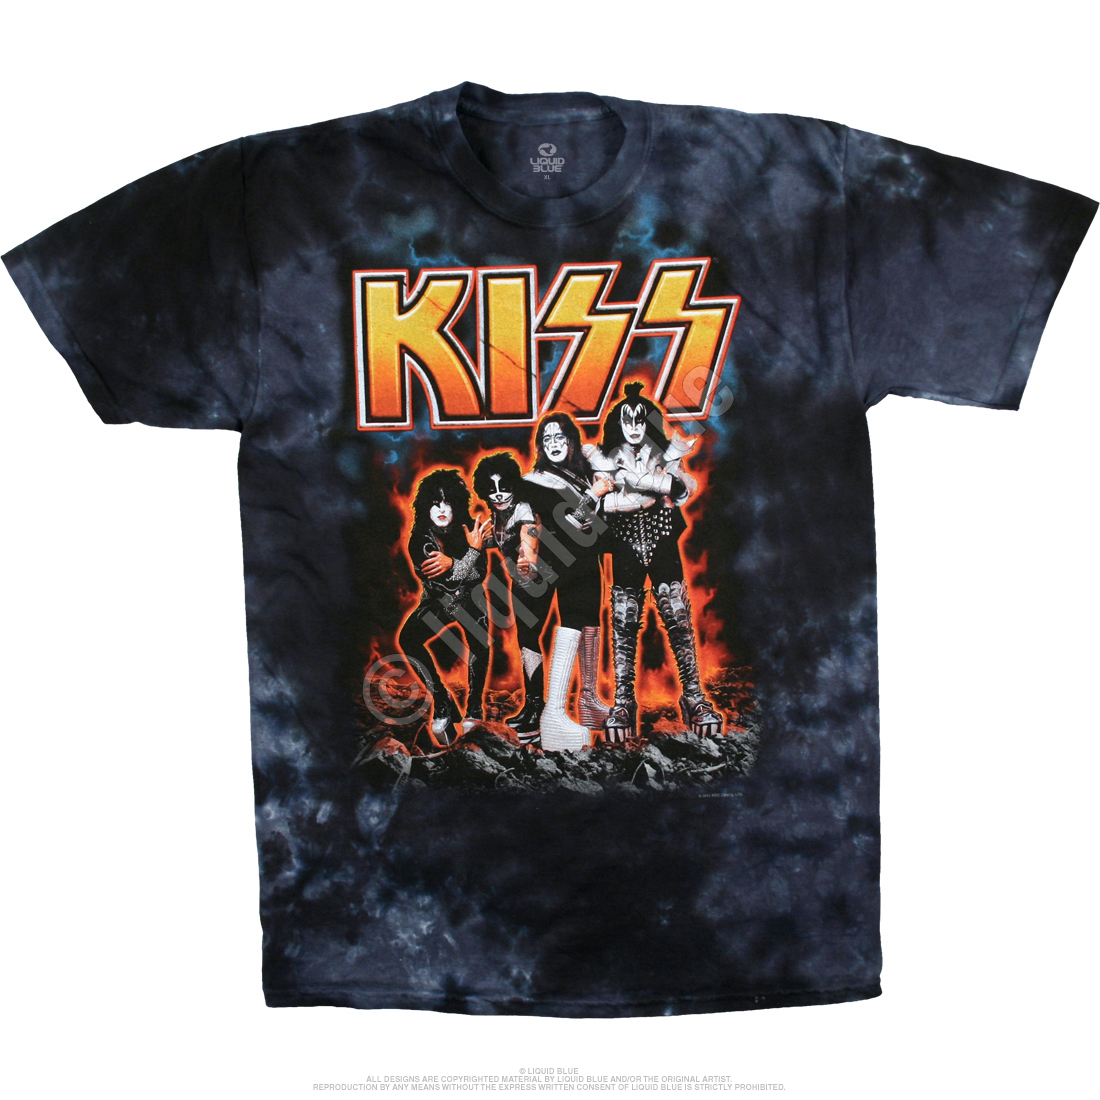 Hotter Than Hell Tie-Dye T-Shirt